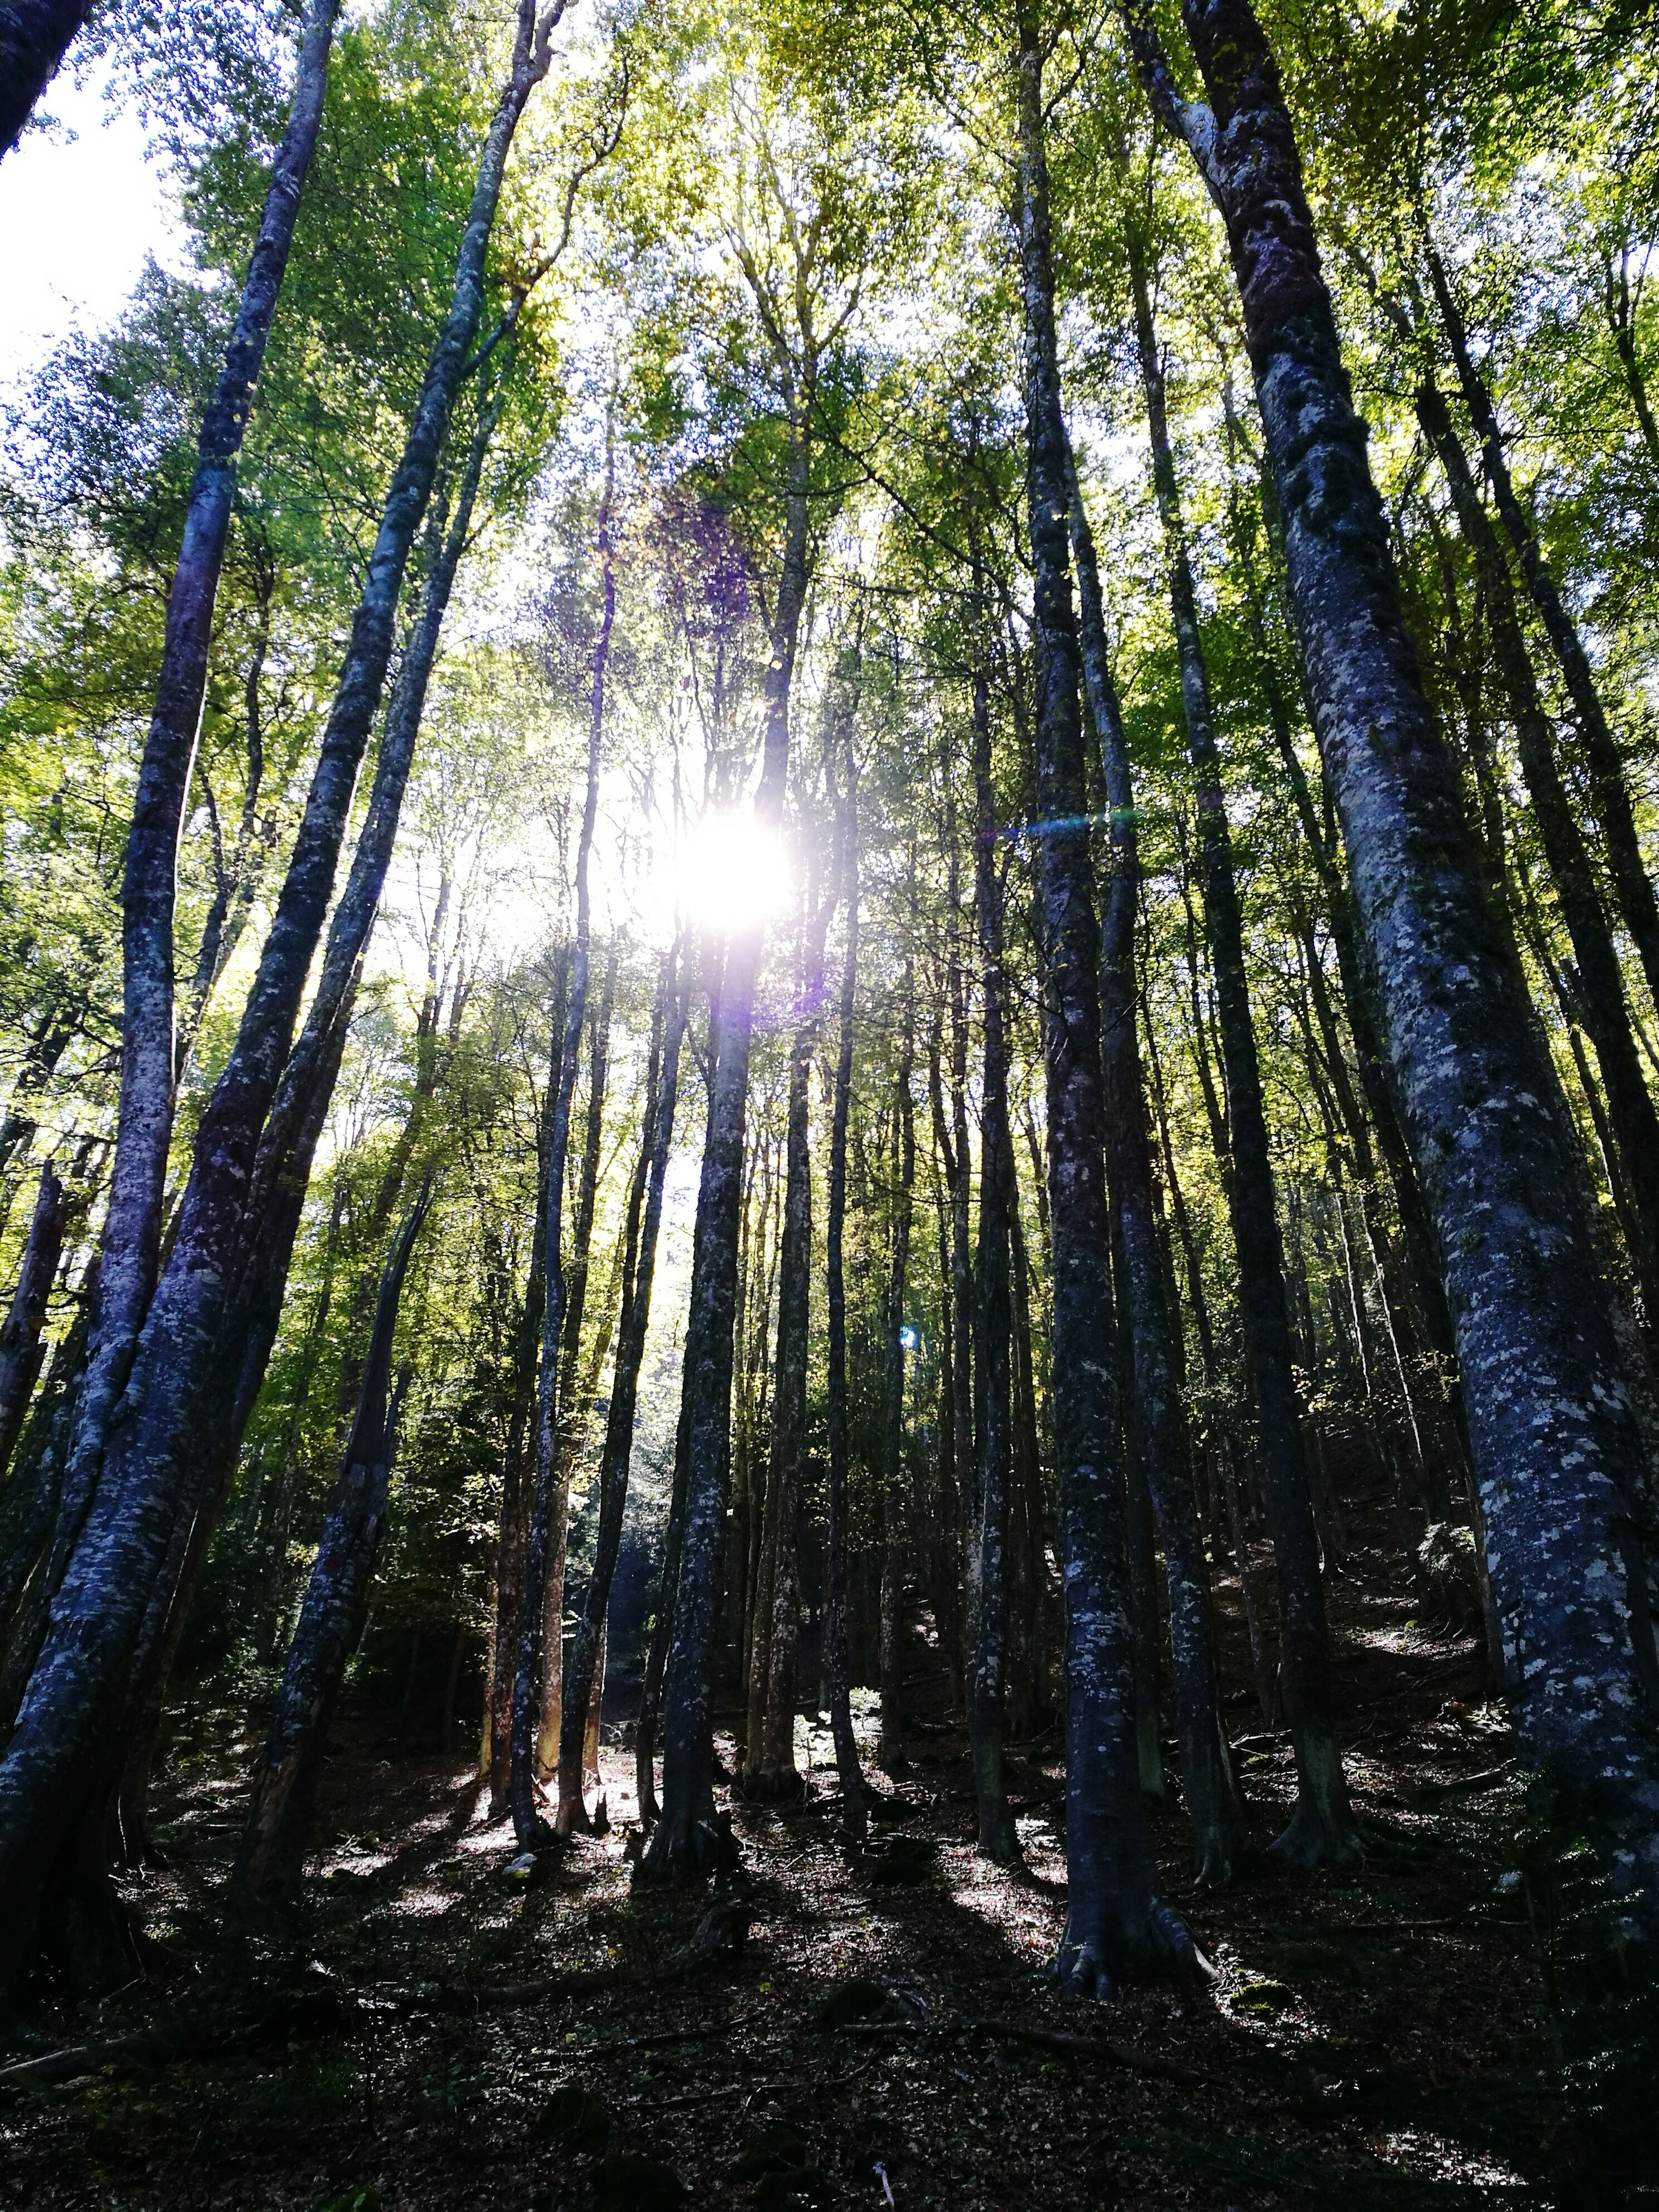 low angle view, forest, tree trunk, tree, woodland, tranquility, tranquil scene, scenics, growth, nature, beauty in nature, sunlight, sun, non-urban scene, tall - high, branch, day, sunbeam, outdoors, green color, tall, green, back lit, solitude, woods, remote, bright